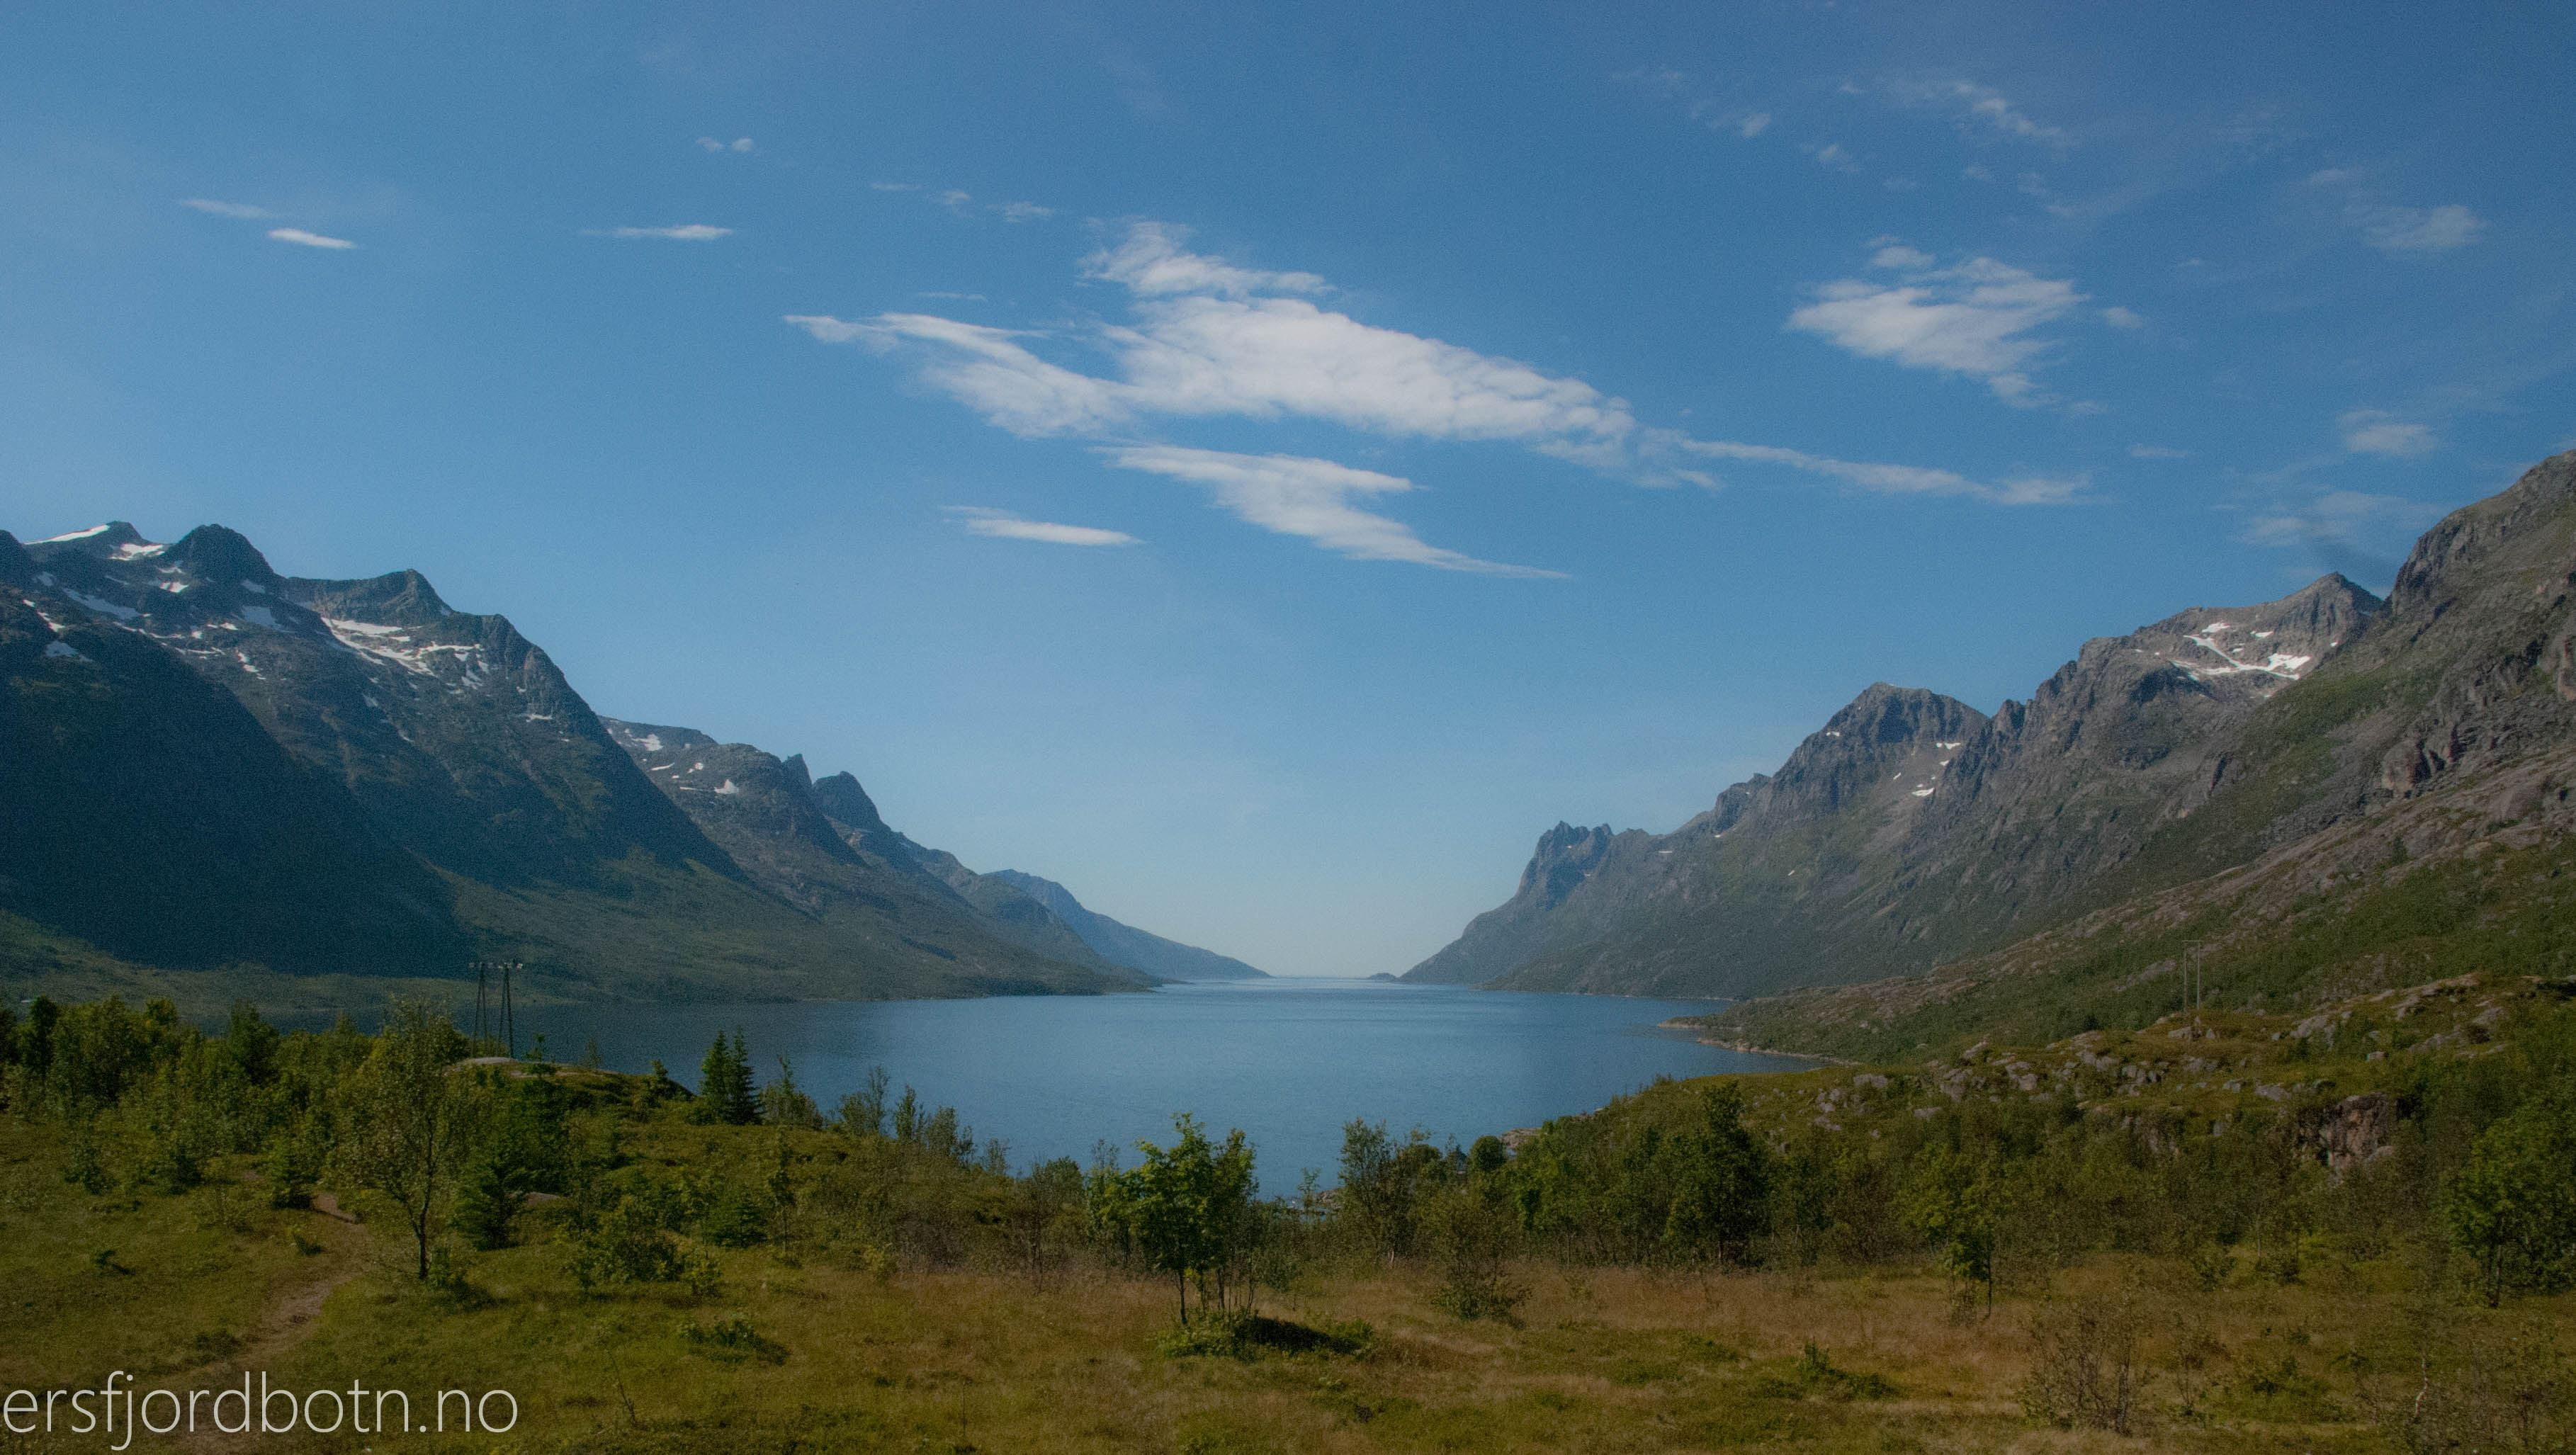 Discover the Island of Senja, called